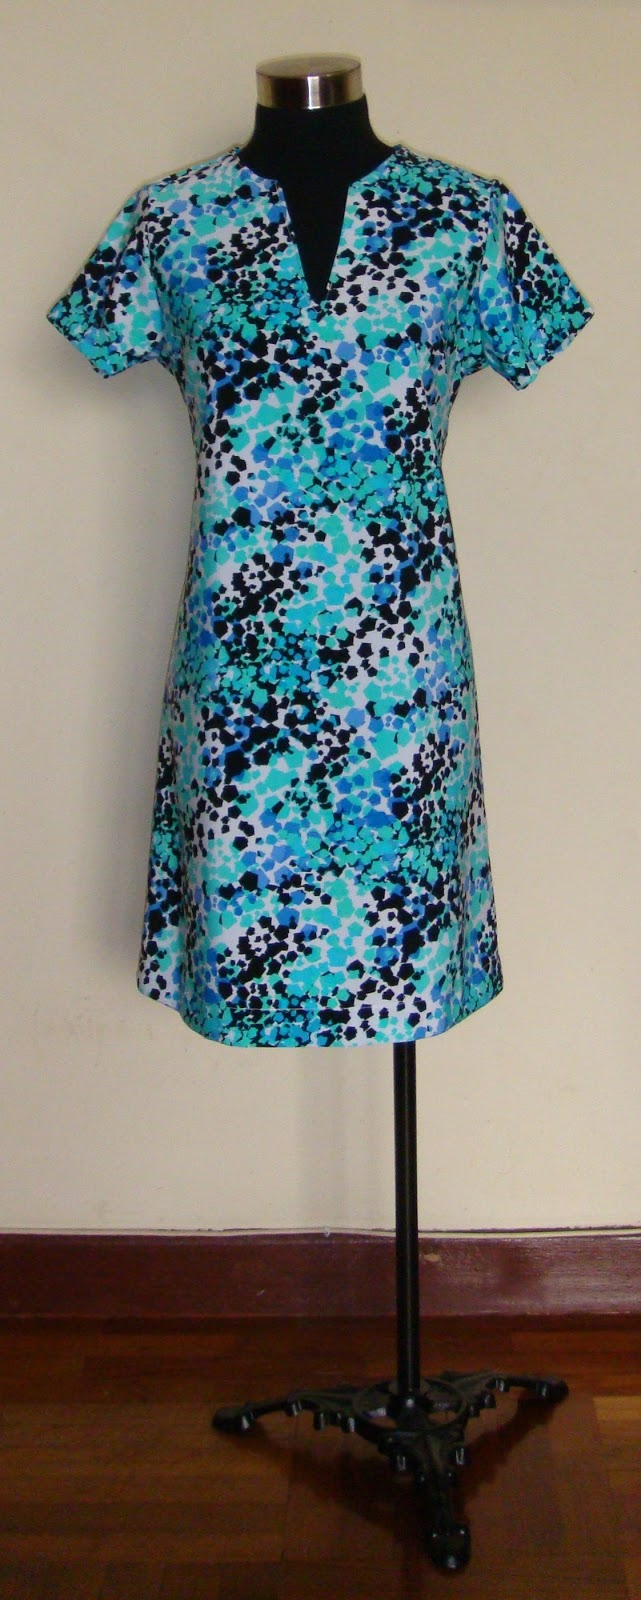 http://velvetribbonsew.blogspot.com/2012/03/vr-everyday-dress.html